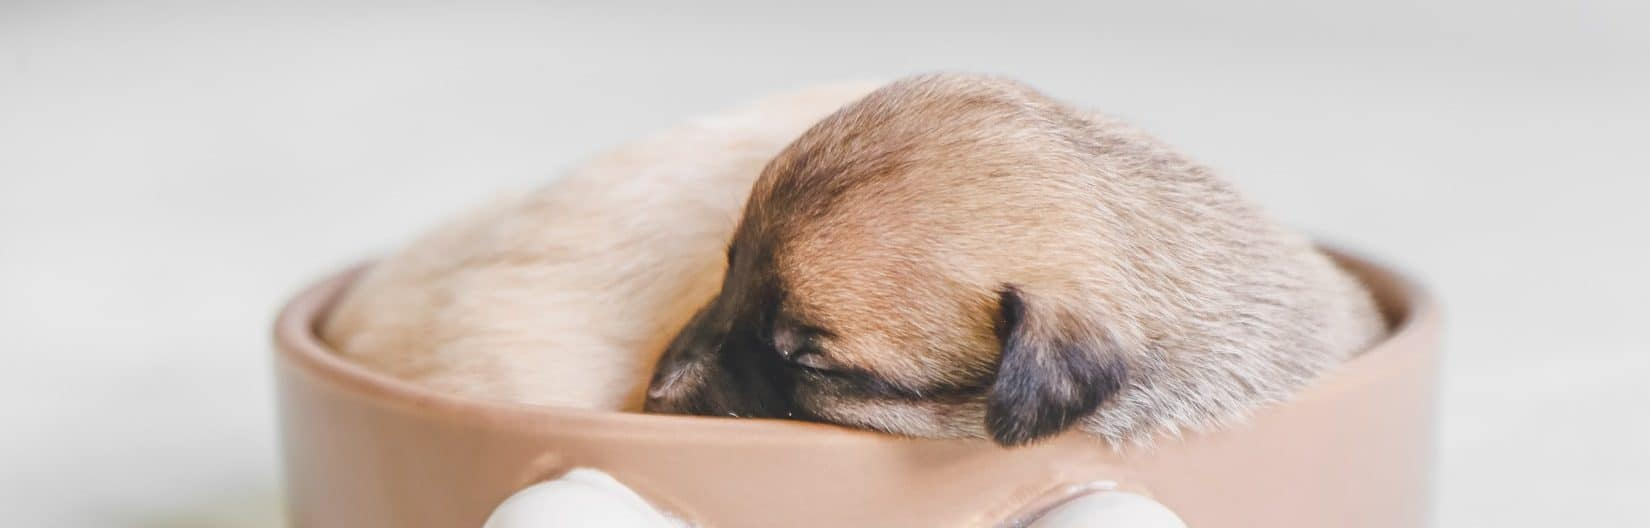 Pup In A Bowl